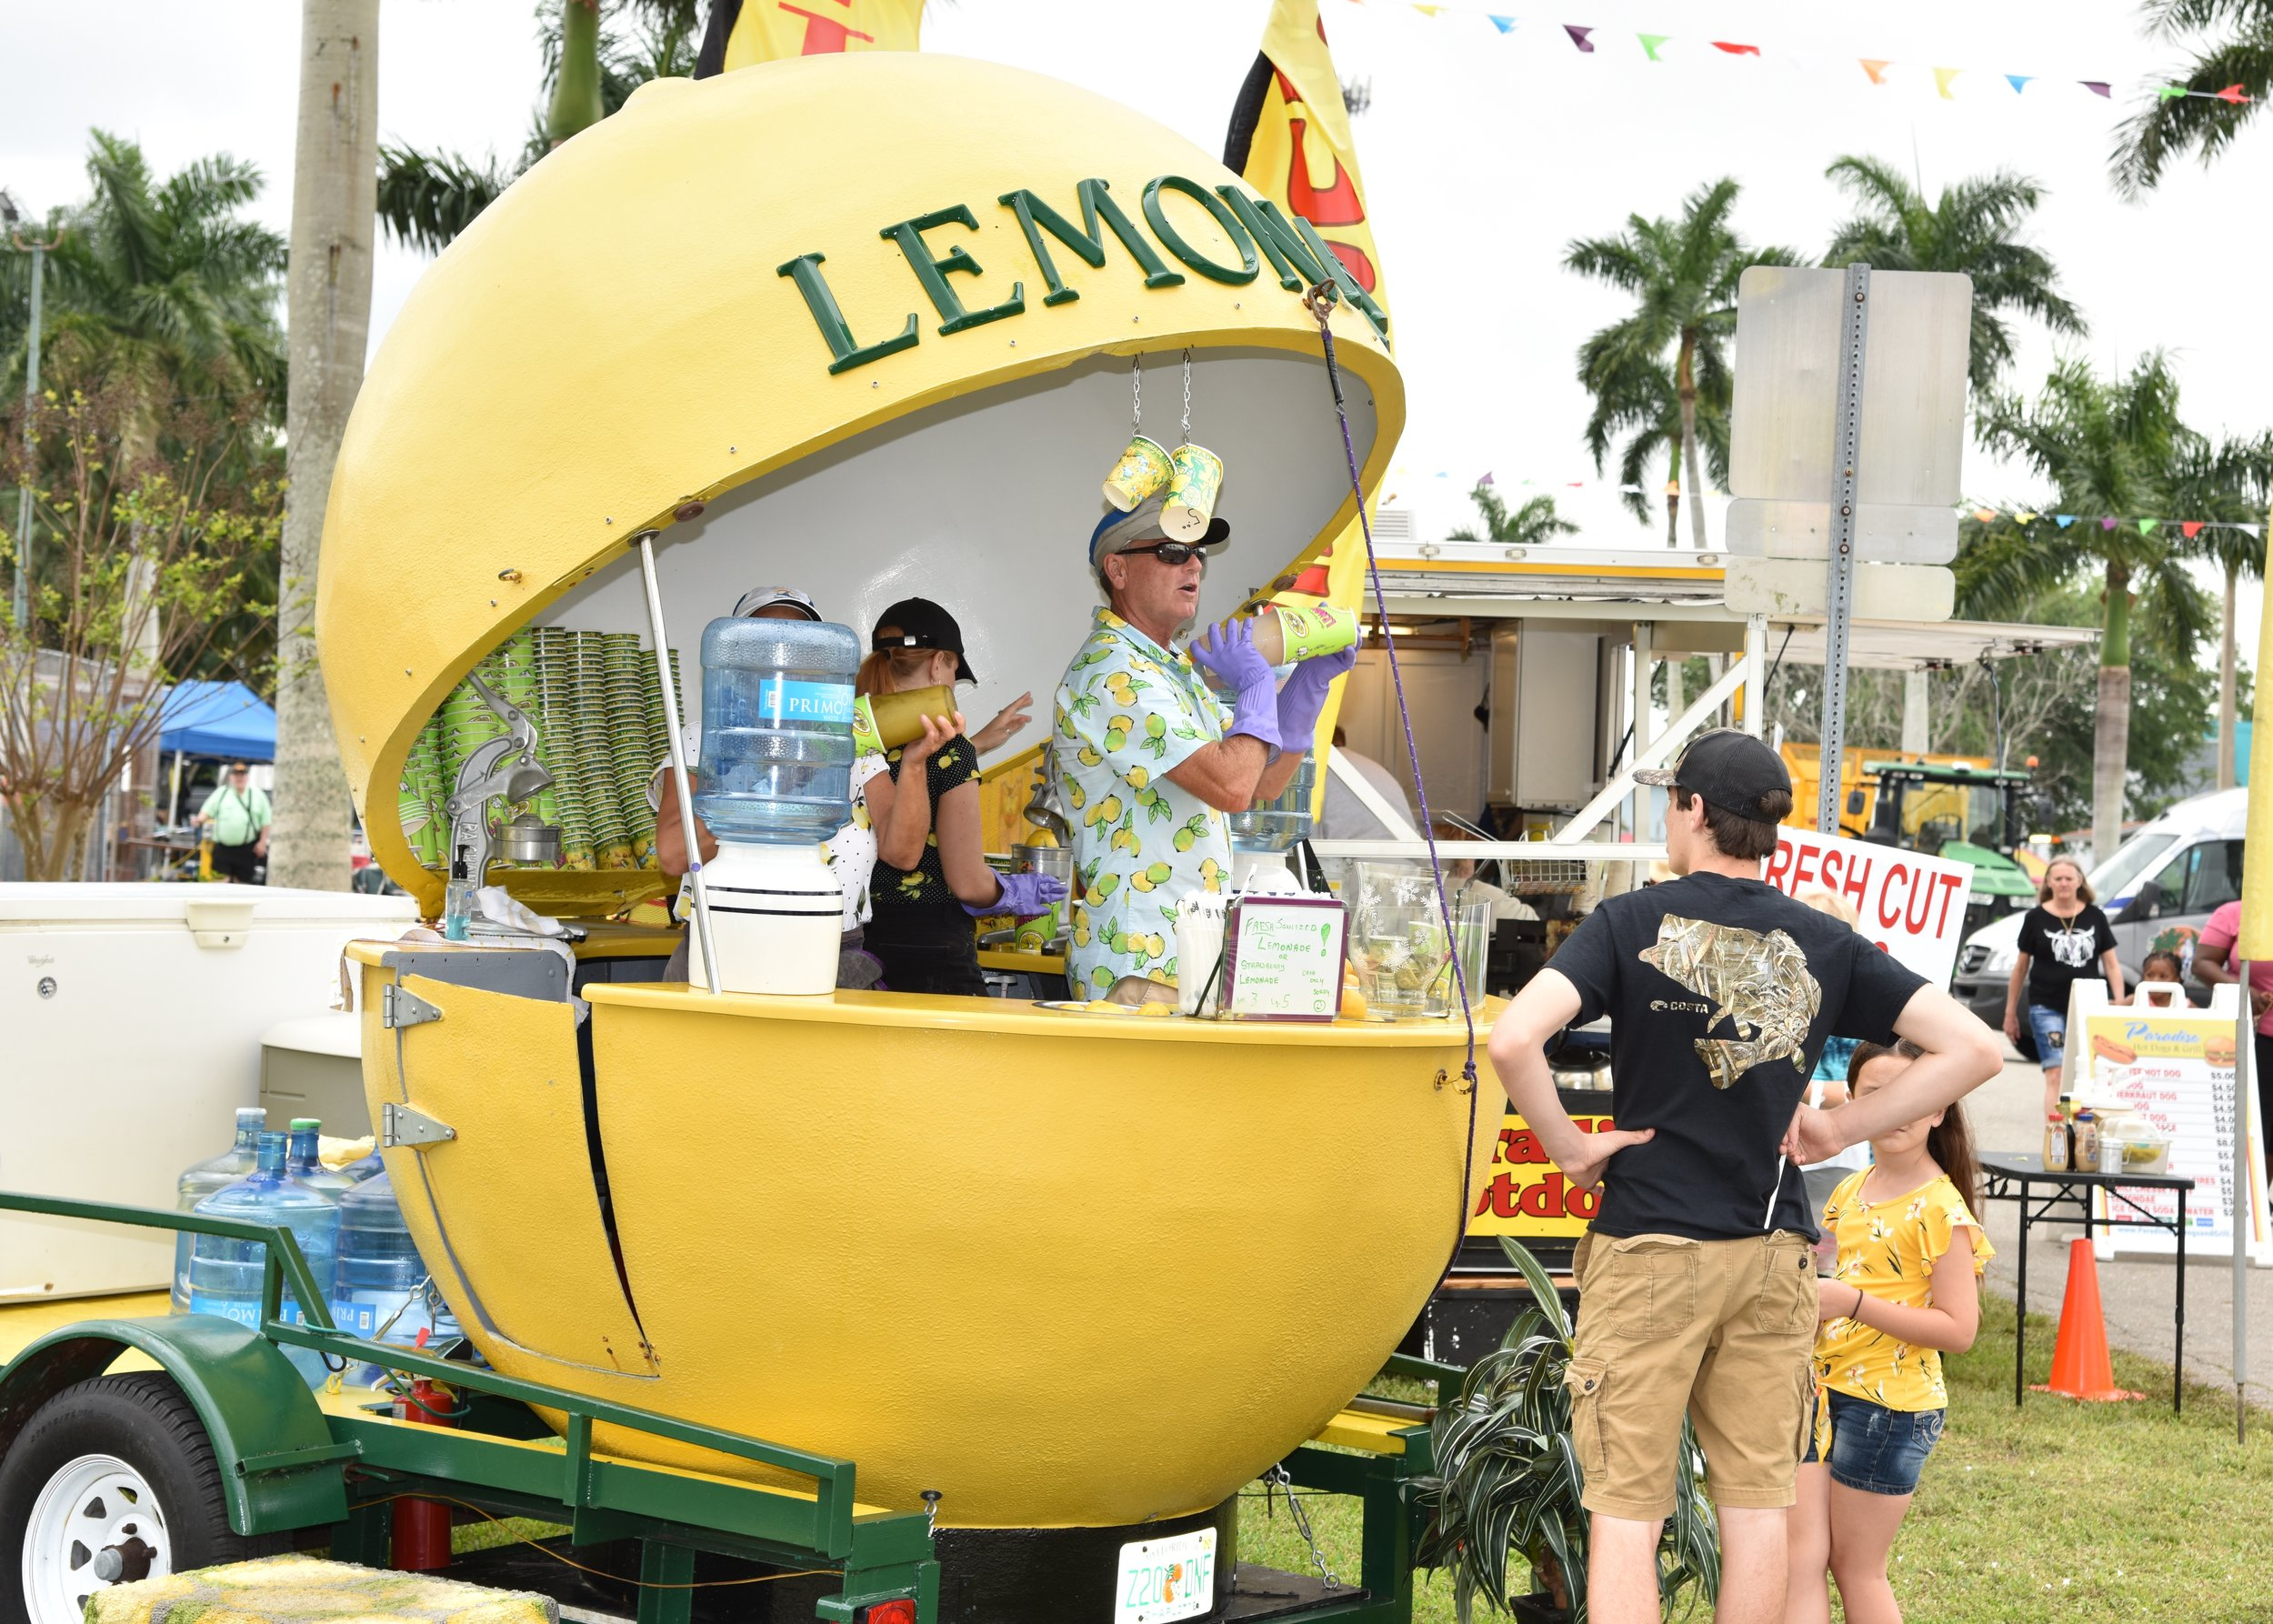 This lemon vendor is one booth space